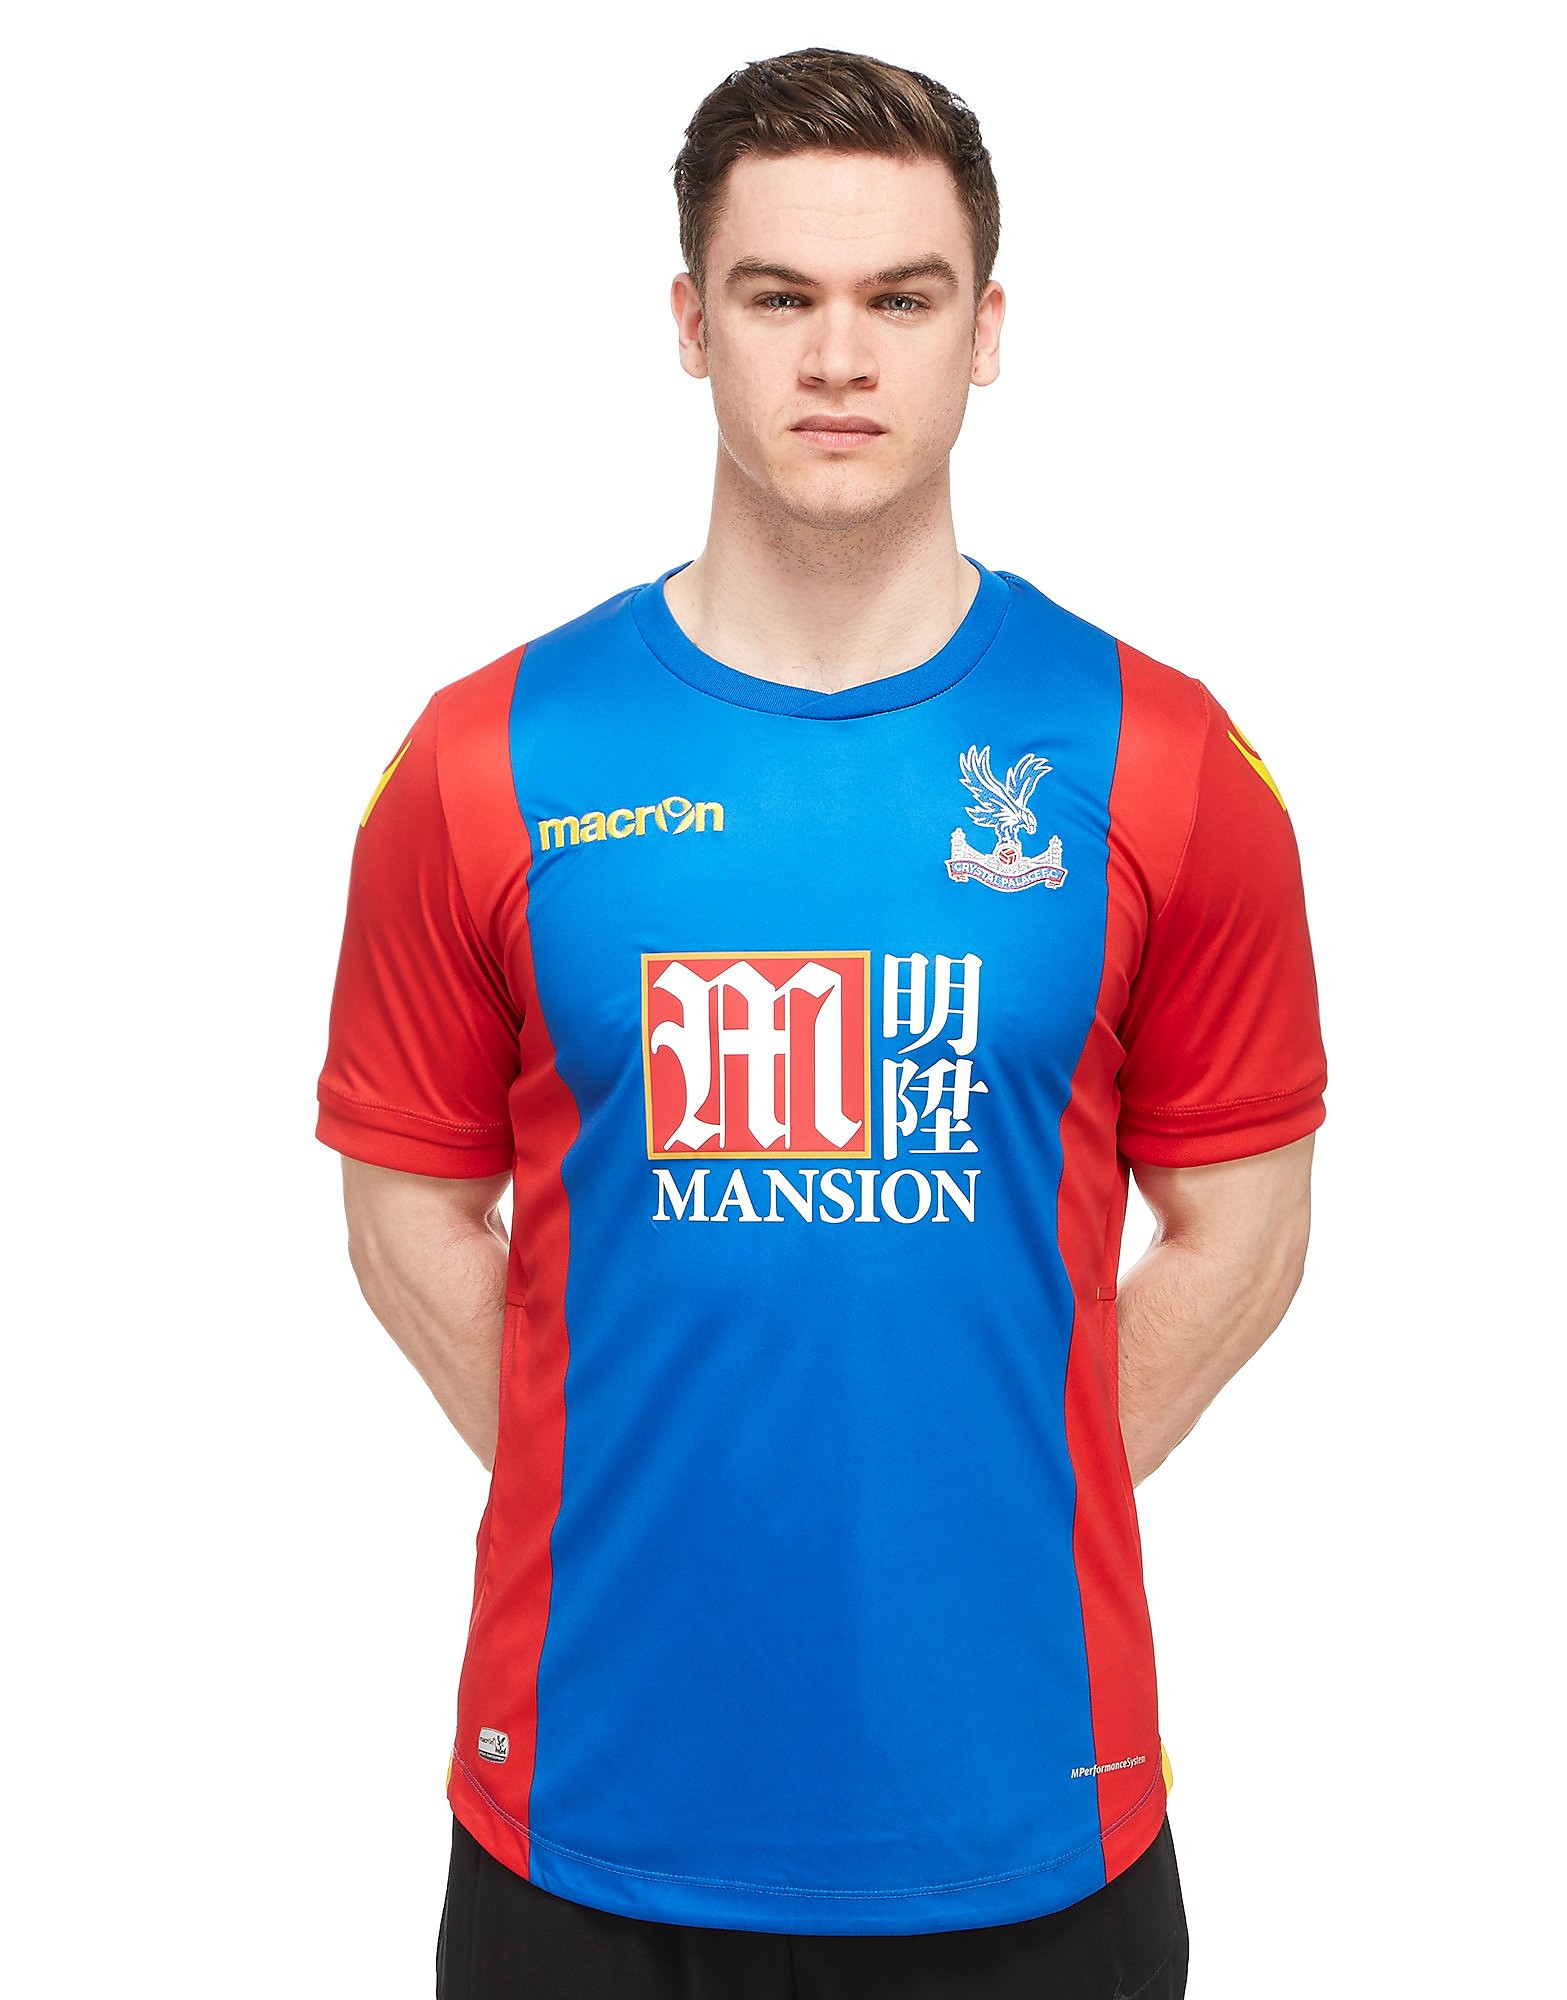 Macron Crystal Palace Home 2016/17 Shirt